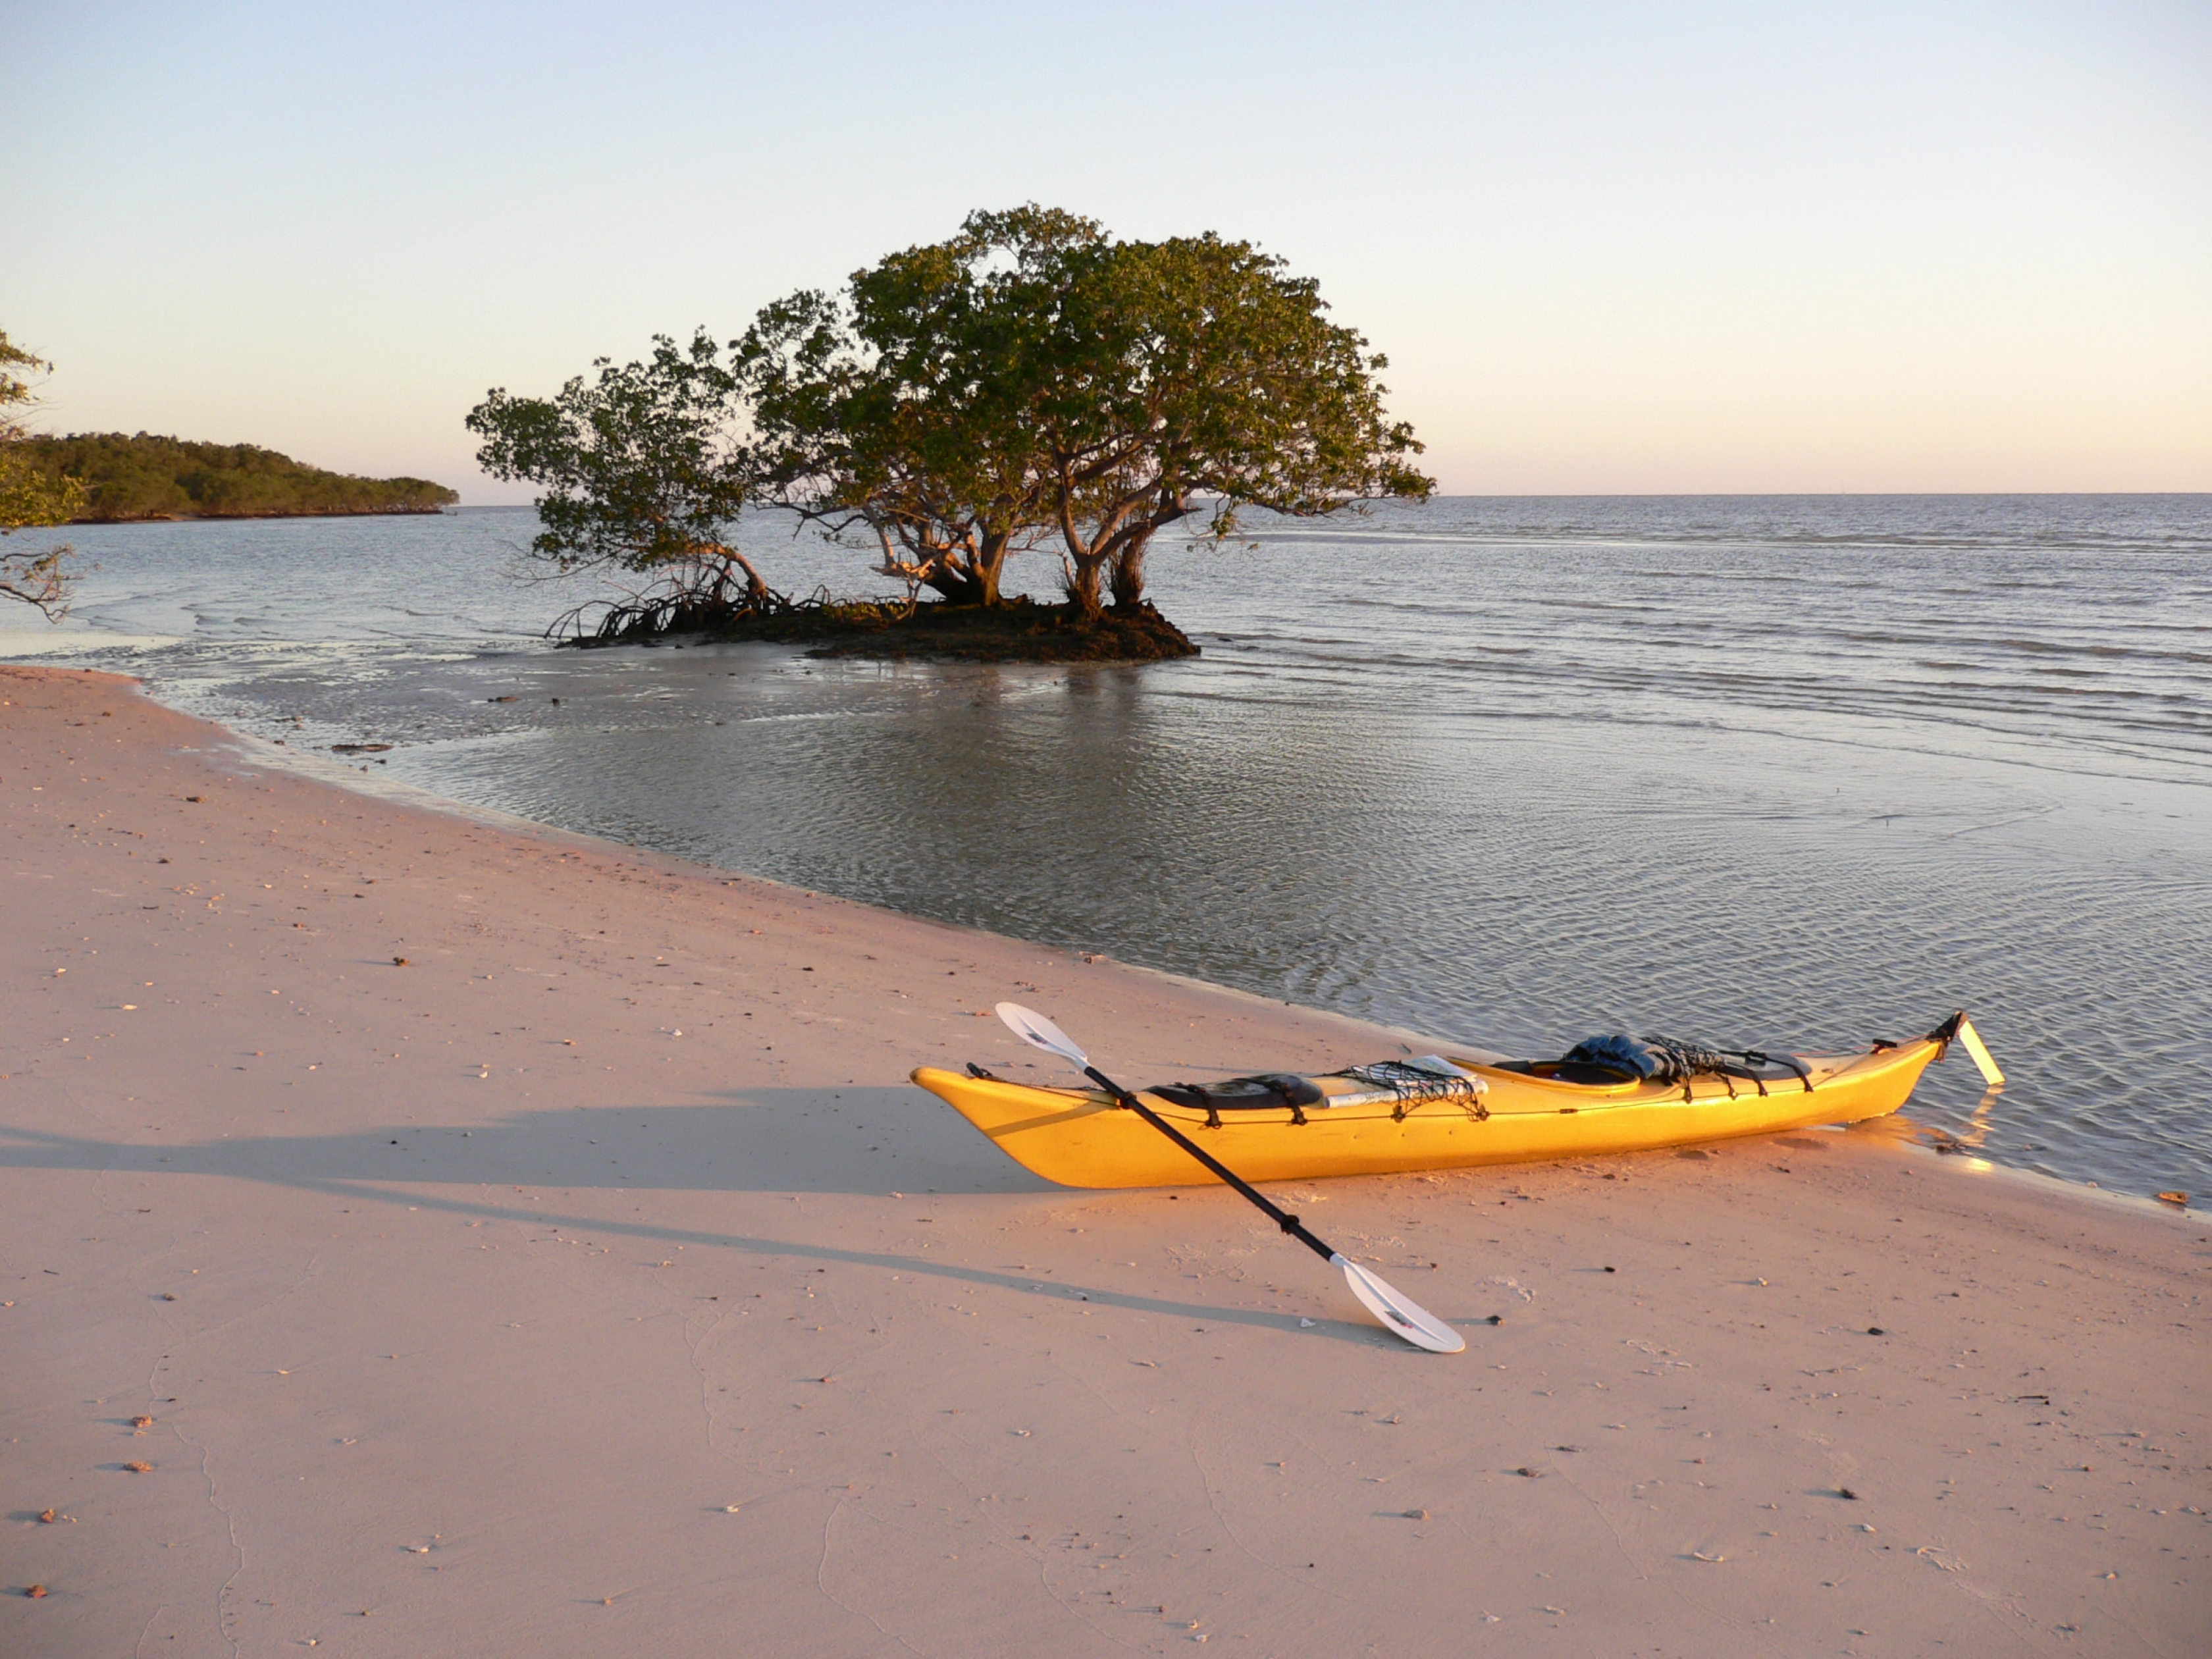 A kayak on the beach in Everglades at Tiger Key.